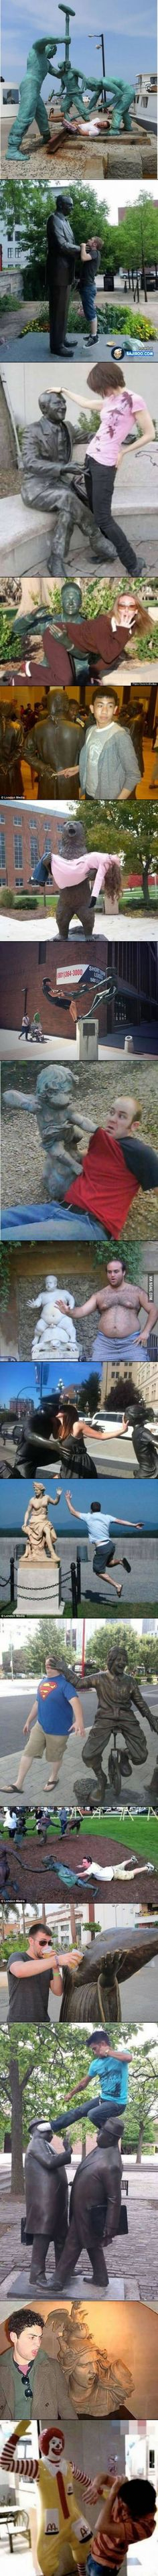 Humor Discover Fun with statues Stupid Memes, Stupid Funny, Haha Funny, Hilarious, Funny Stuff, Funny Images, Funny Photos, Best Funny Pictures, Humorous Pictures